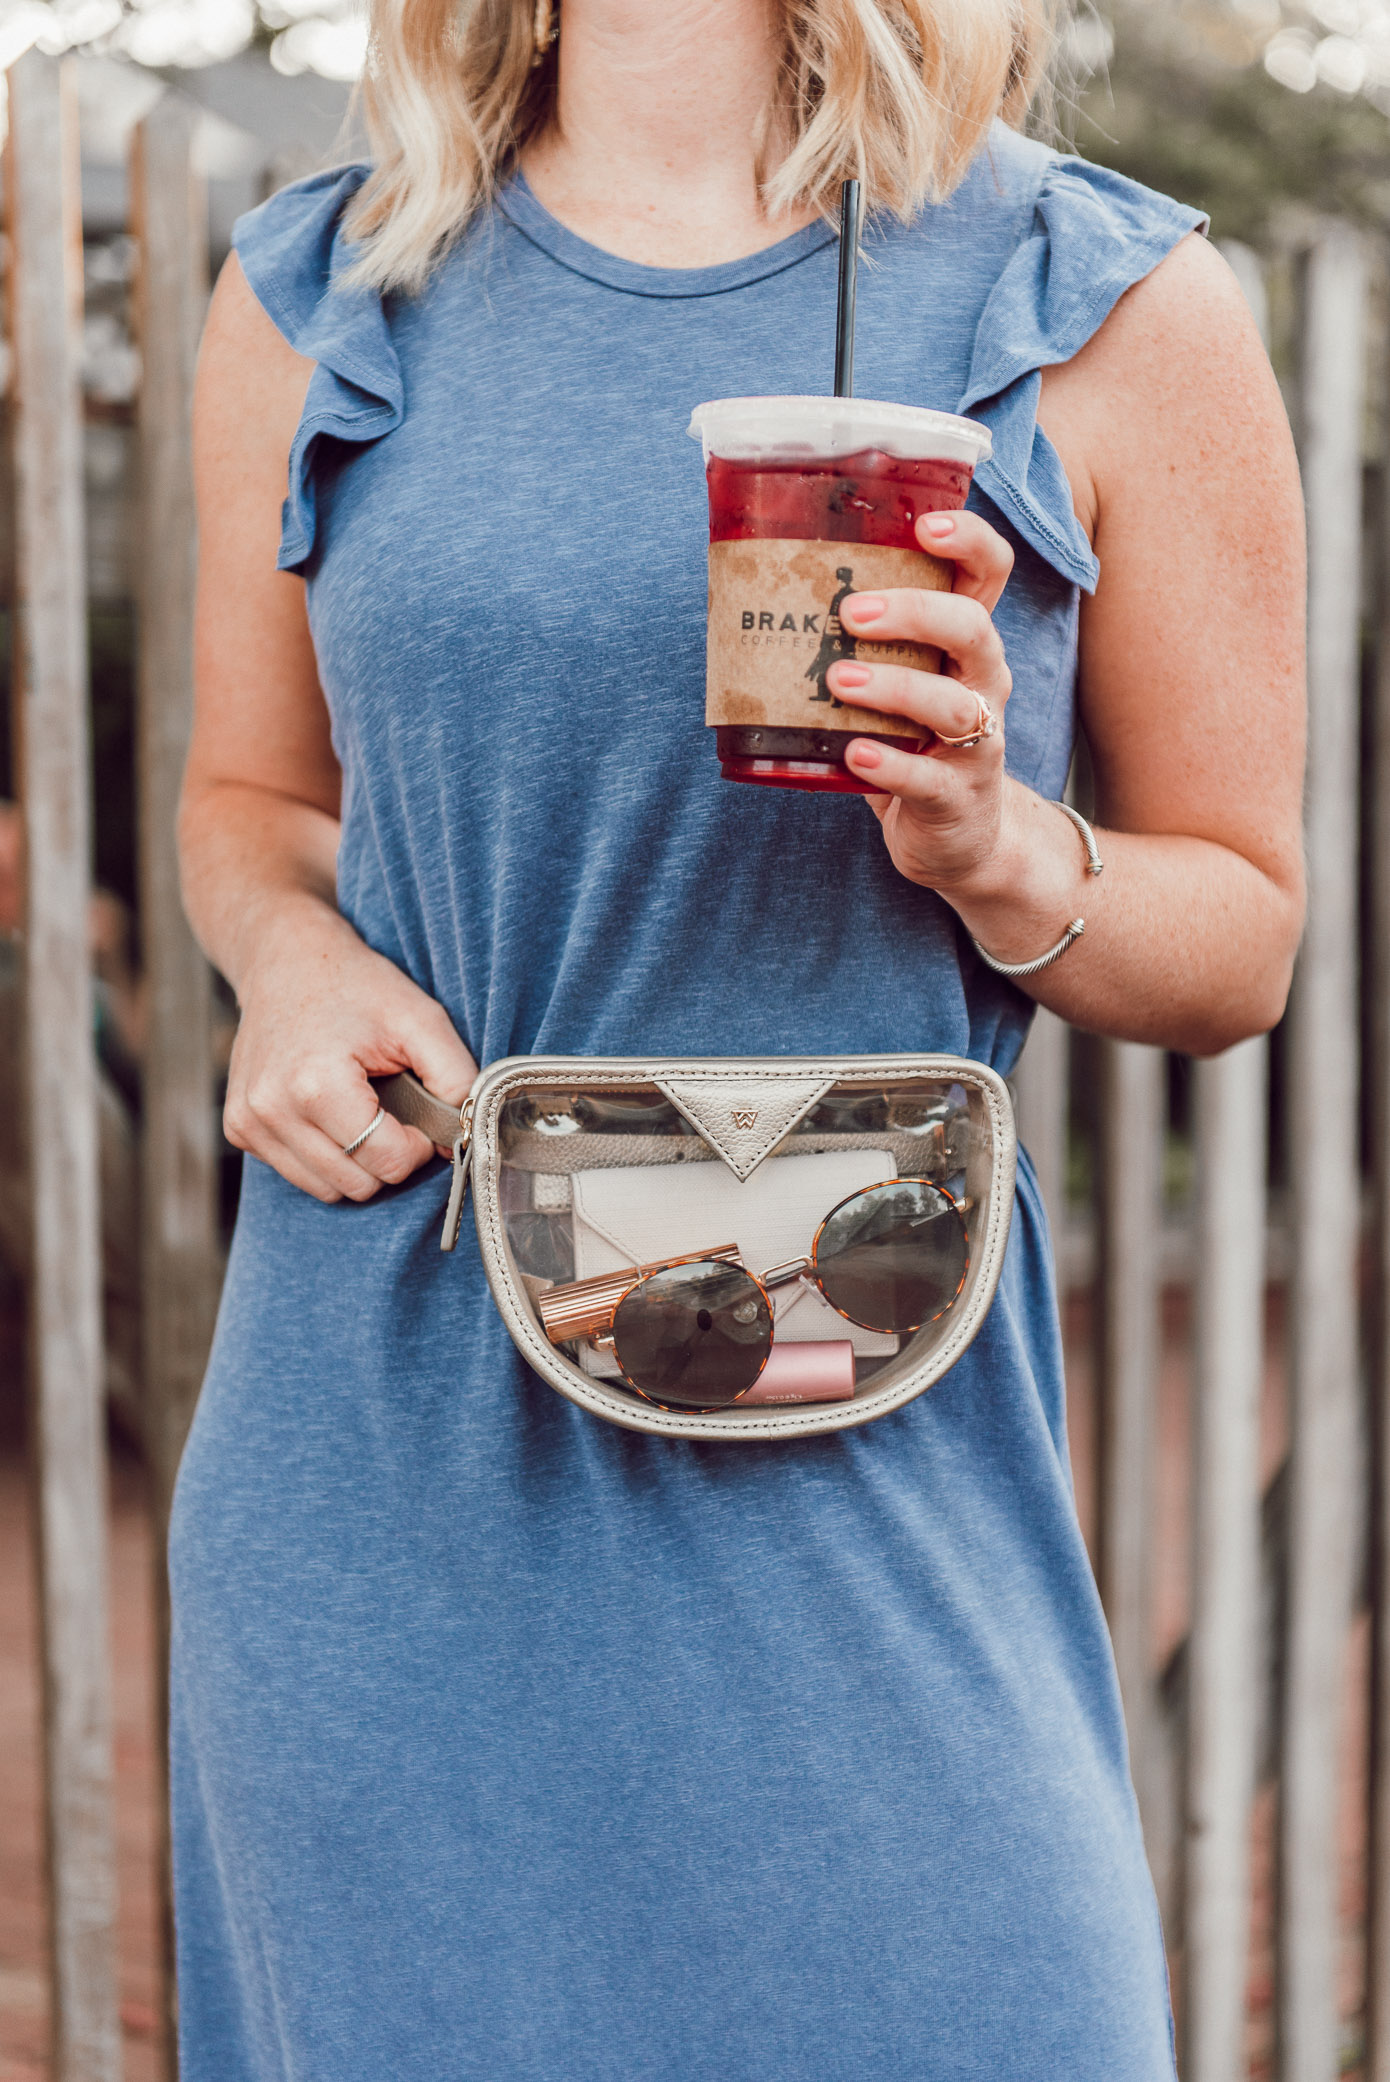 Clear Belt Bag, Clear Waist Bags   Stylish Game Day Bags   Louella Reese